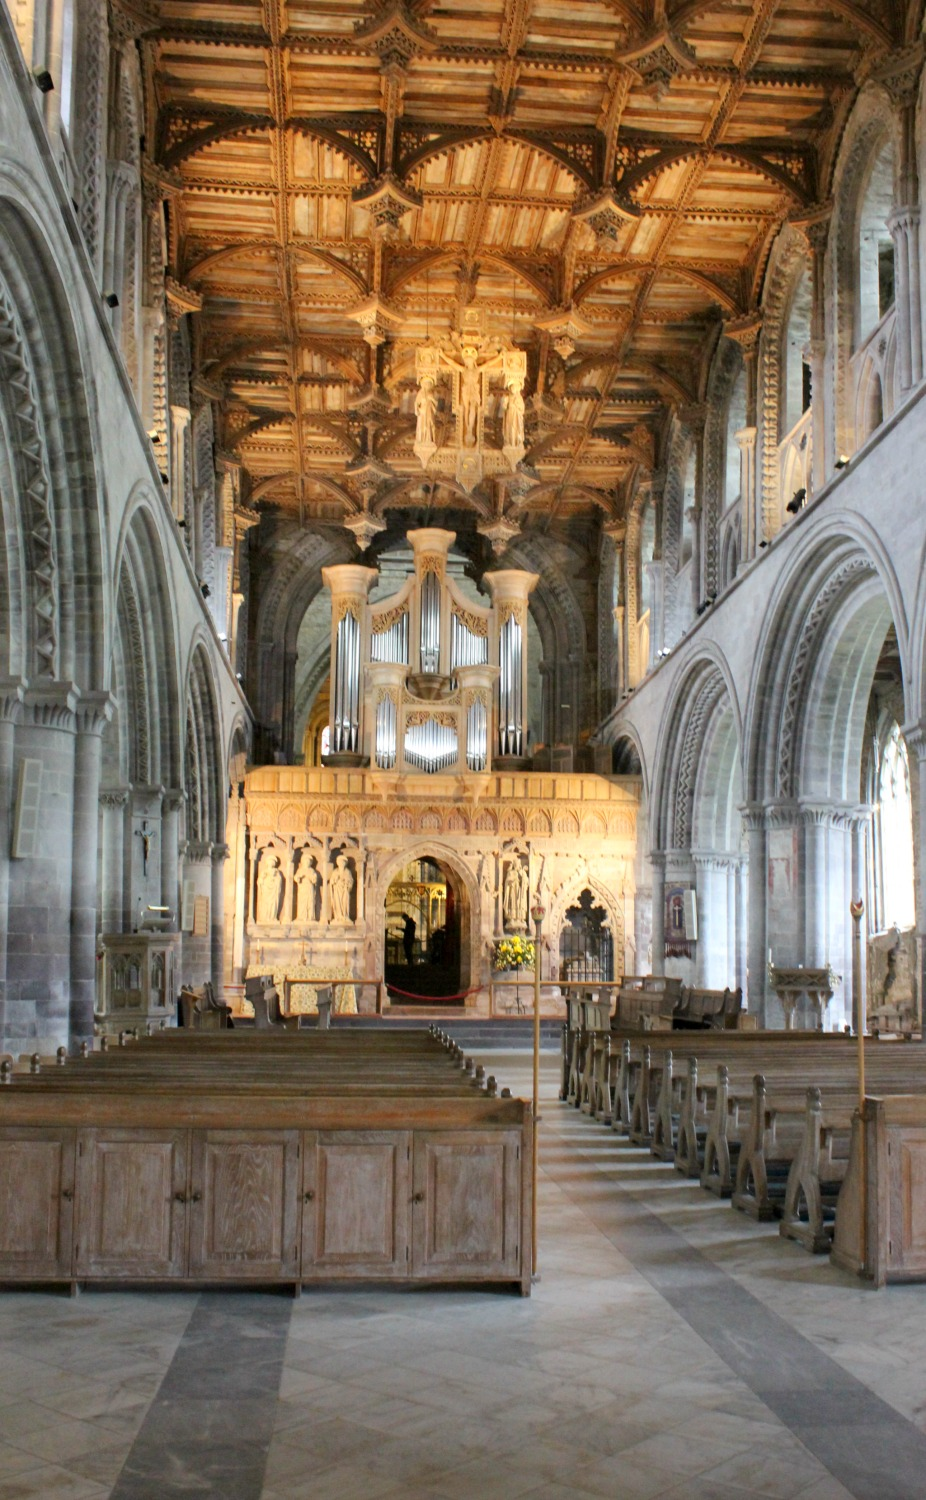 A view of the nave at St Davids Cathedral in Wales - on our journey to discover Welsh legends